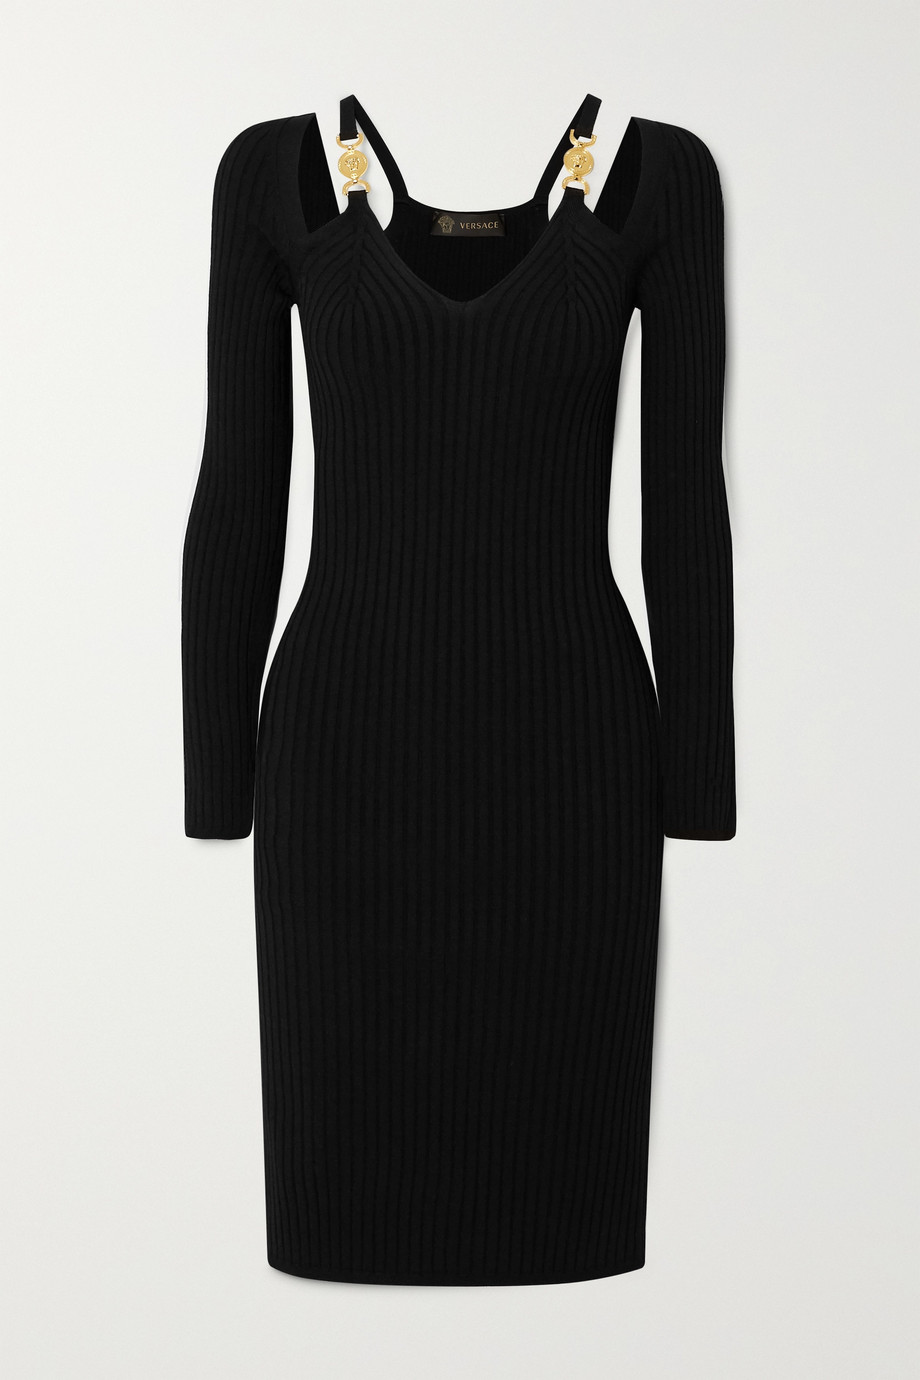 Versace Cutout embellished ribbed-knit dress